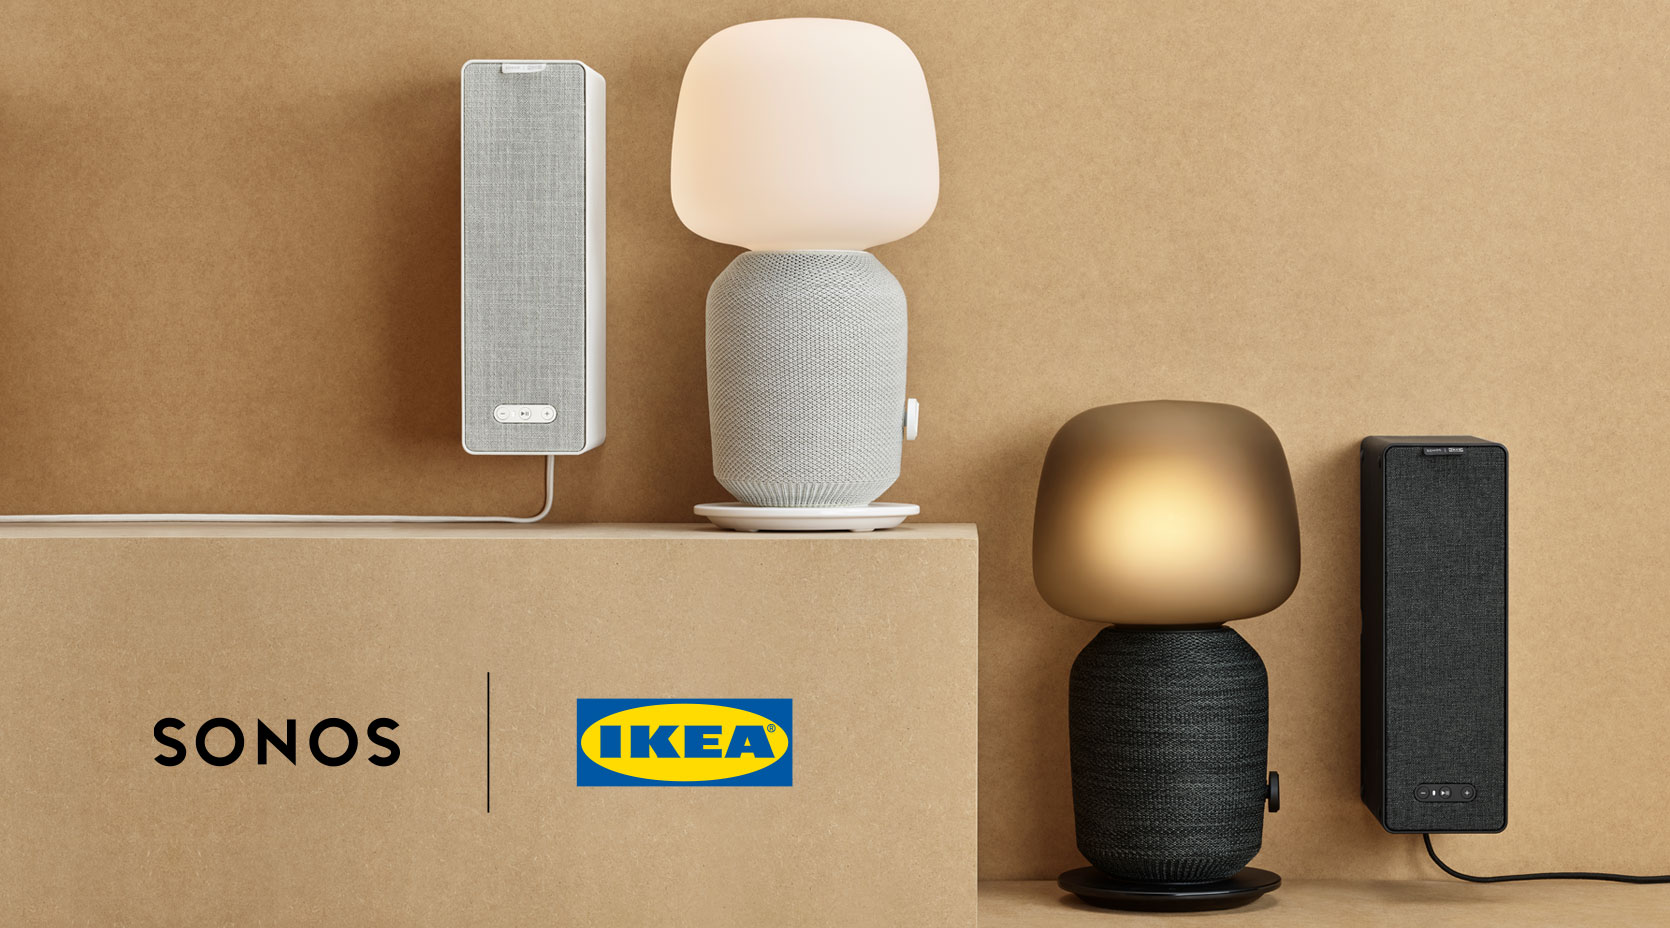 sonos one vs ikea symfonisk